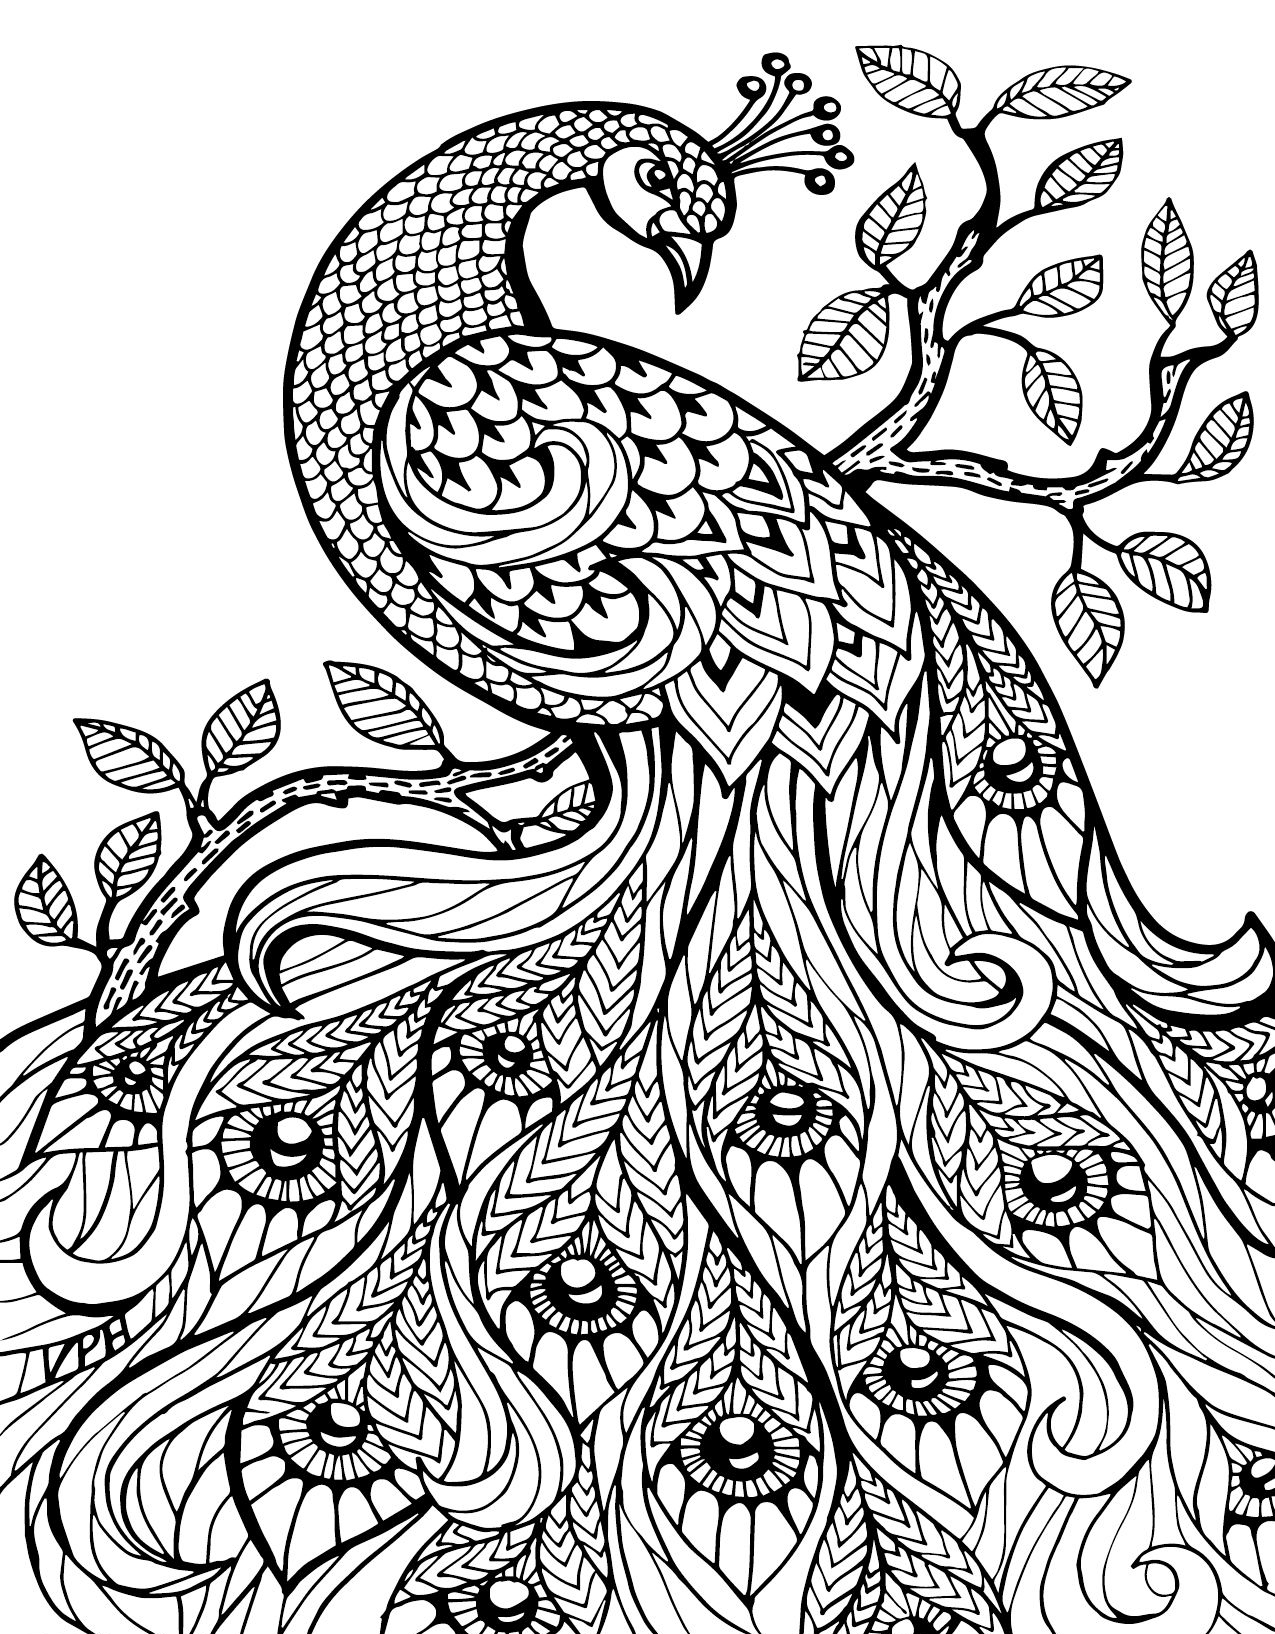 peacock coloring pages for adults cool coloring pages for adults peacock coloring home pages coloring peacock adults for